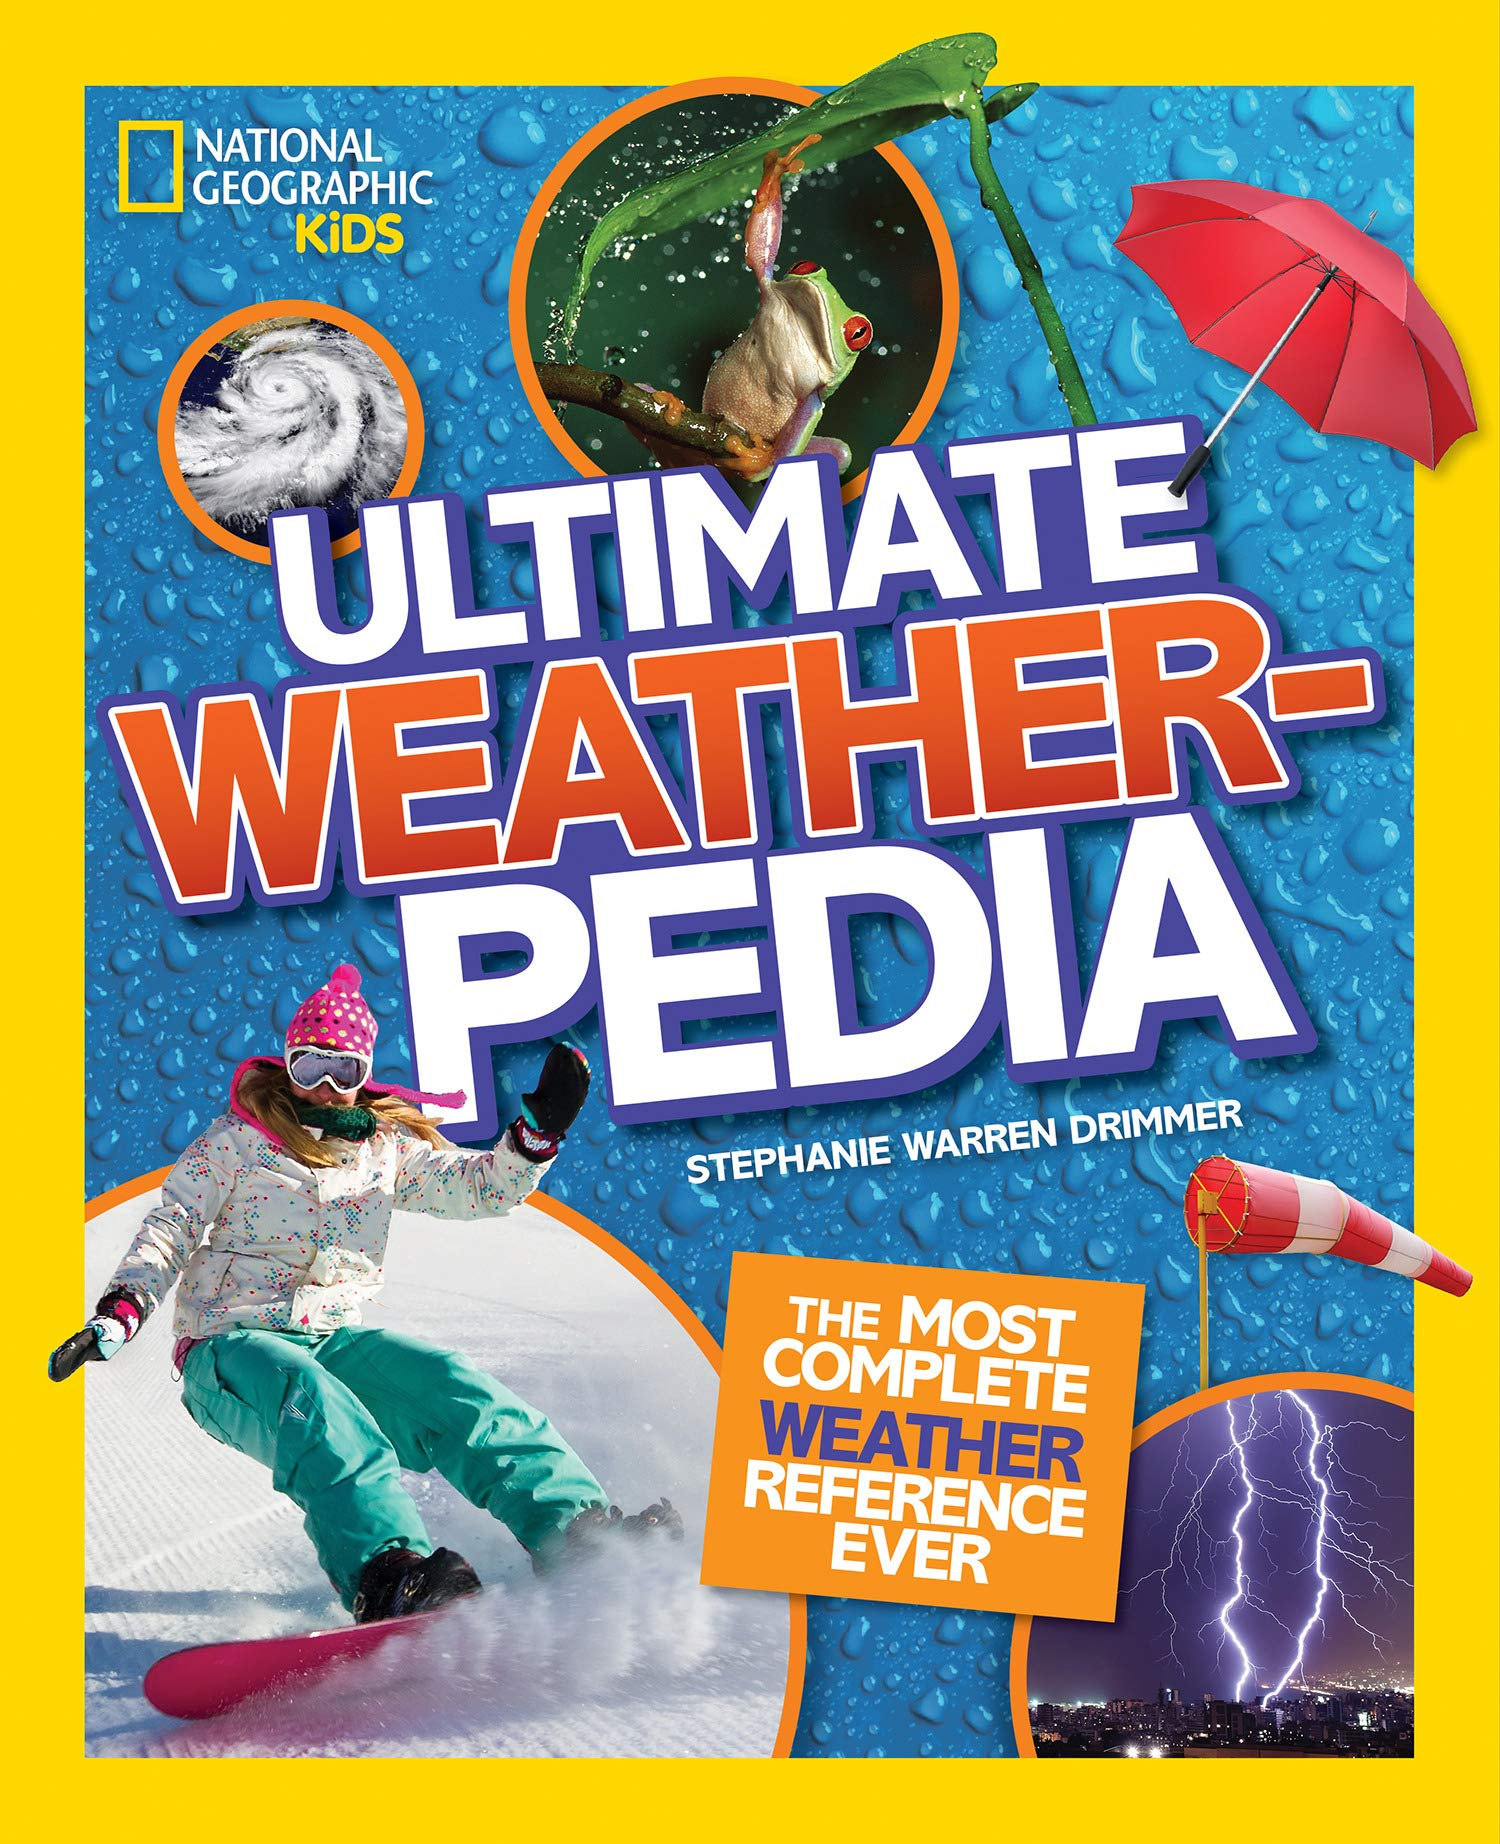 Image OfNational Geographic Kids Ultimate Weatherpedia: The Most Complete Weather Reference Ever